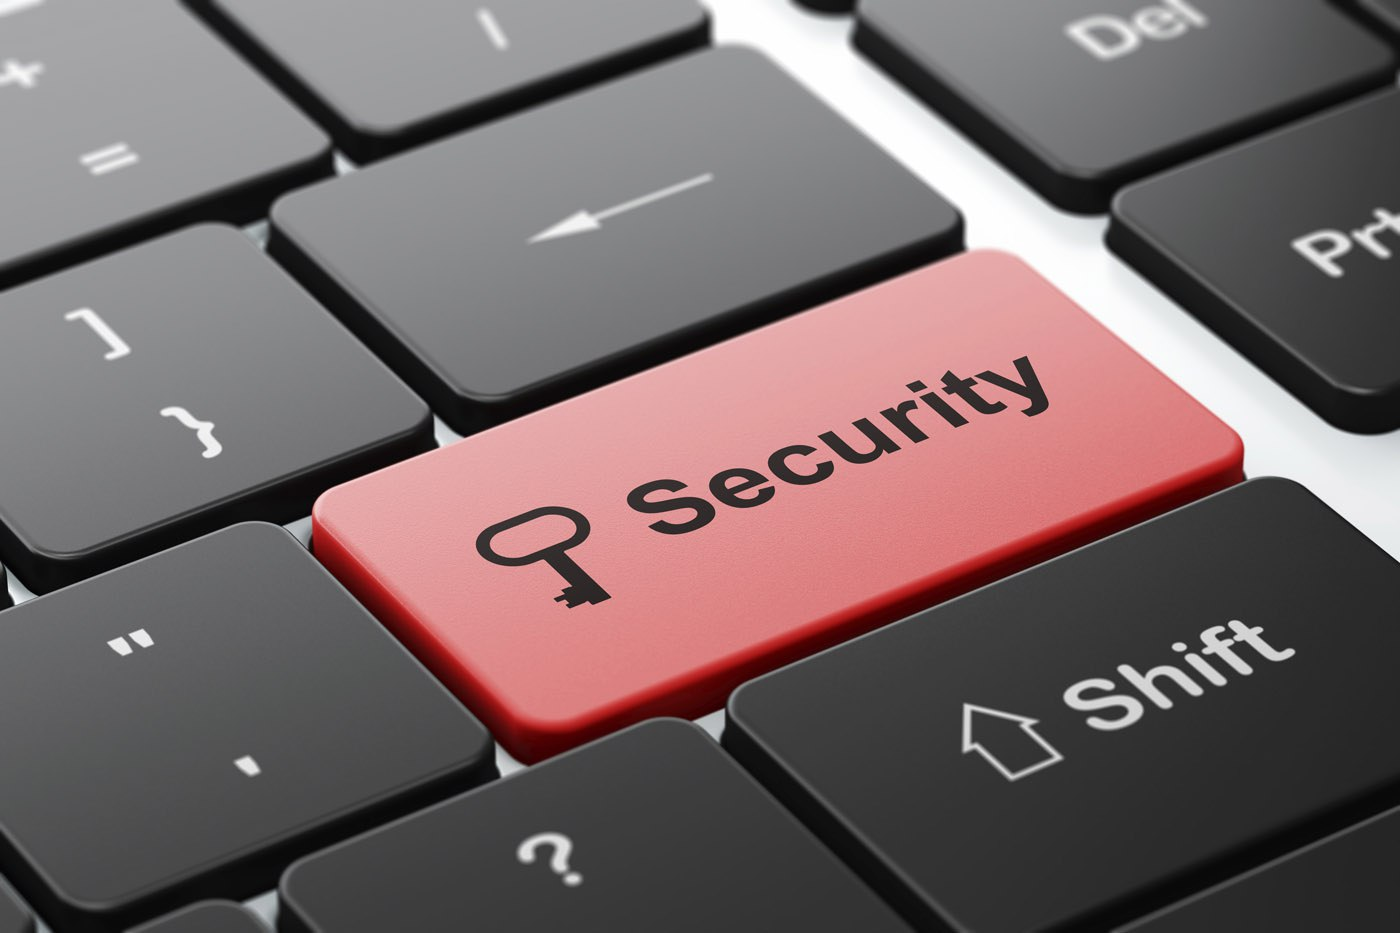 Remarkably, Many Organizations Still Opt for 'Good Enough' Cybersecurity